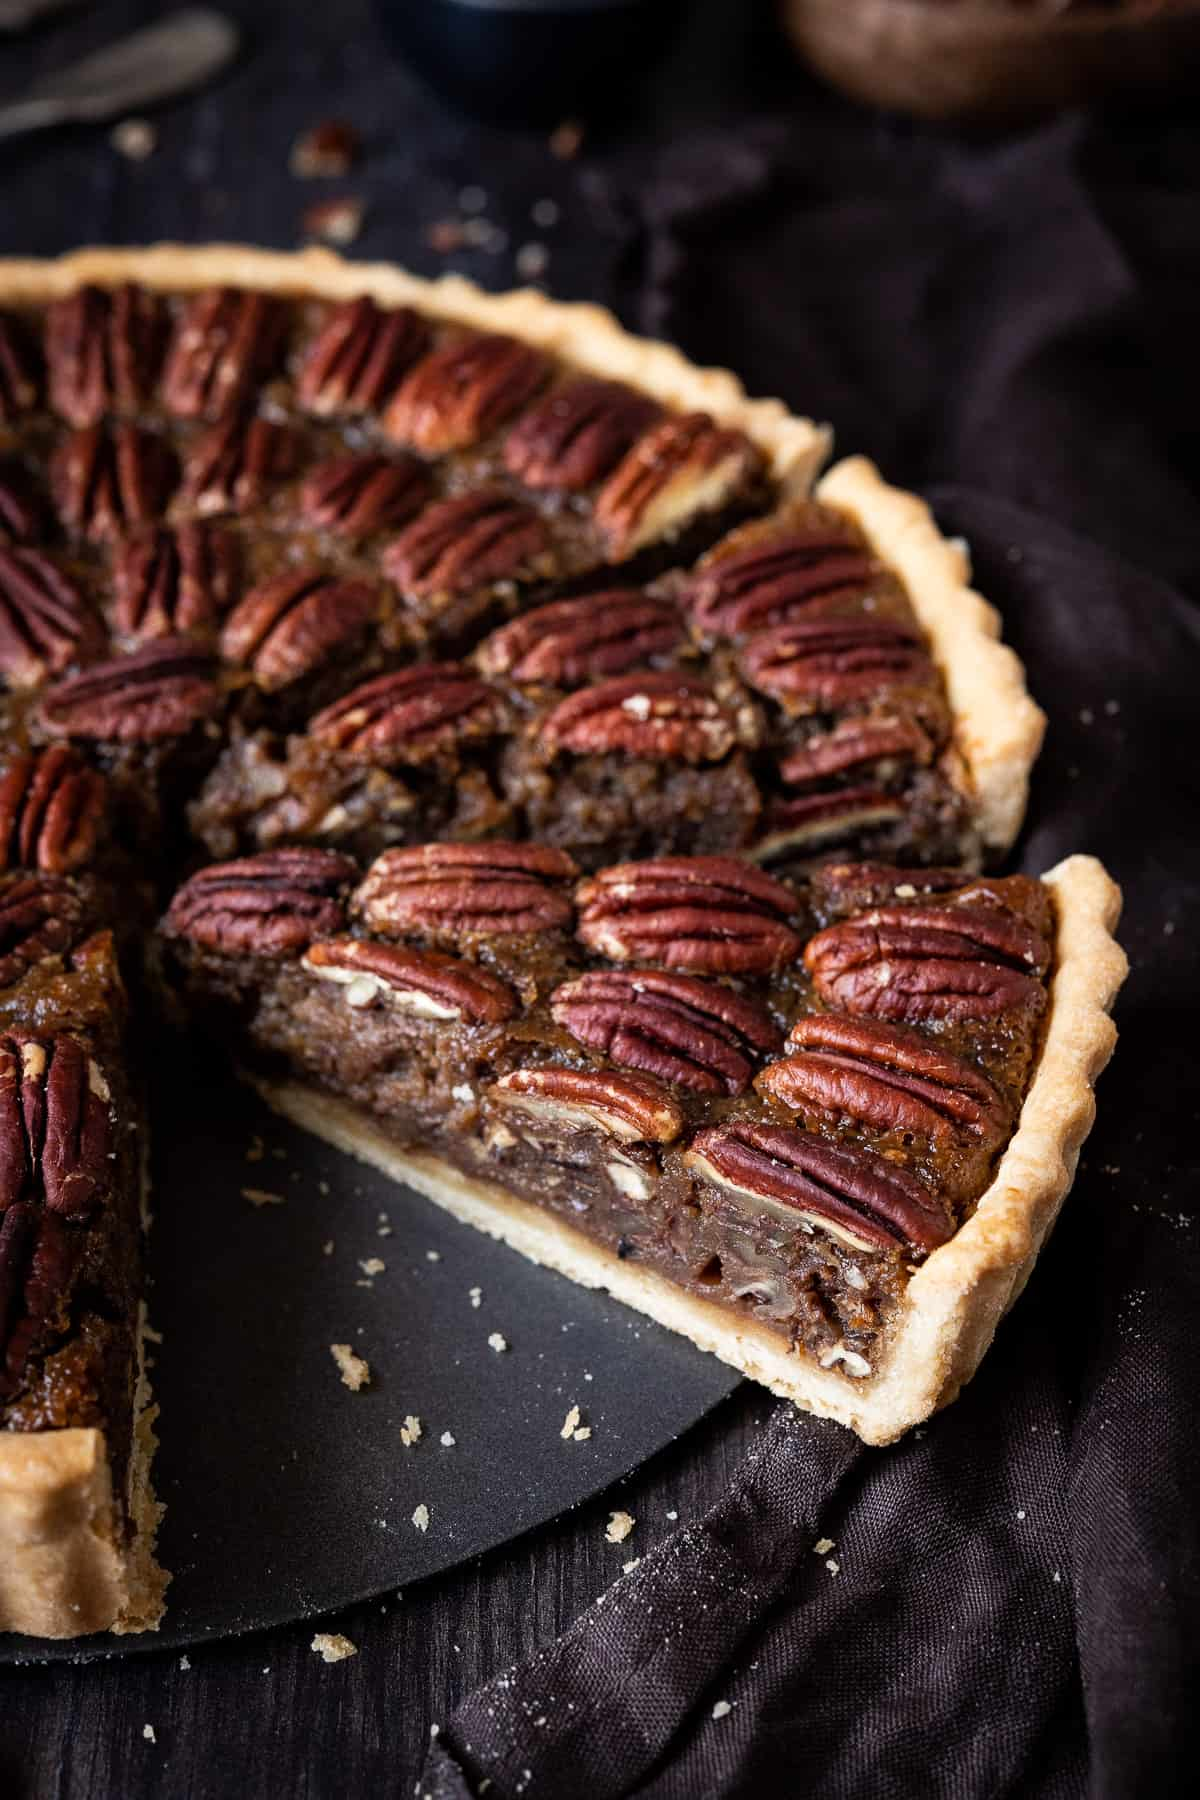 Pecan pie cut into slices on a wooden background with a brown cloth.